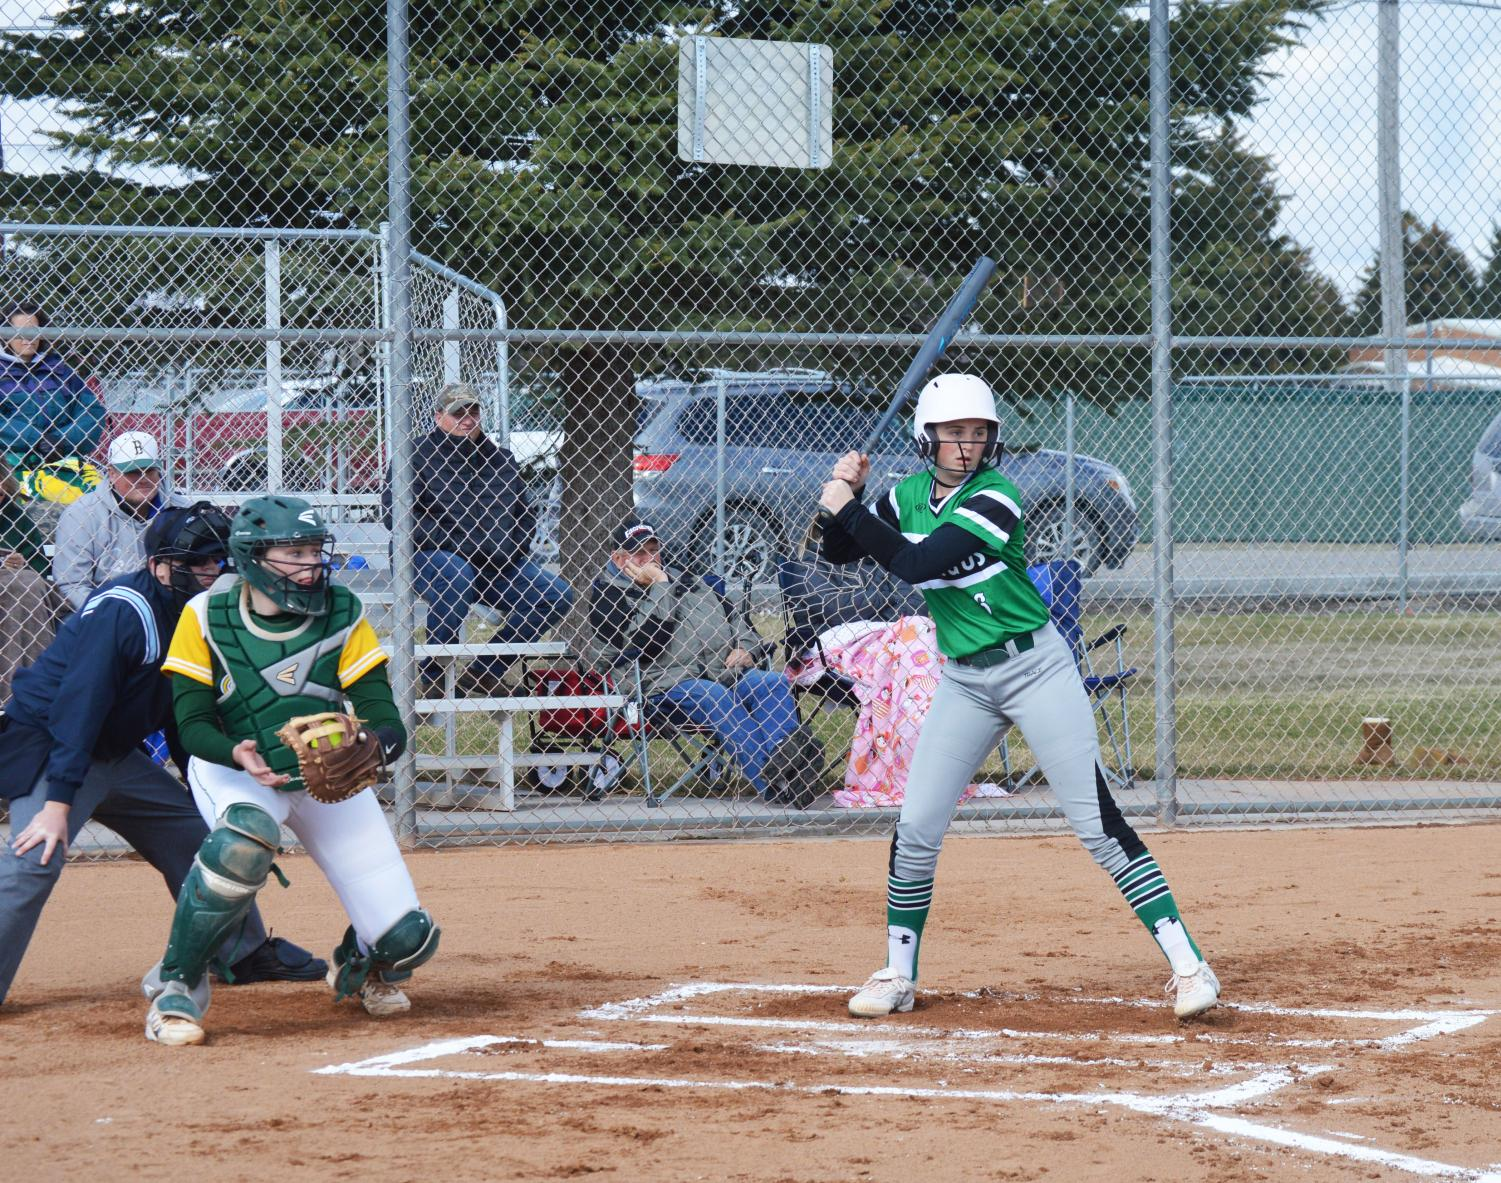 BATTER+UP.+Chloe+Cronquist+%2811%29+gets+ready+to+hit+the+ball.+